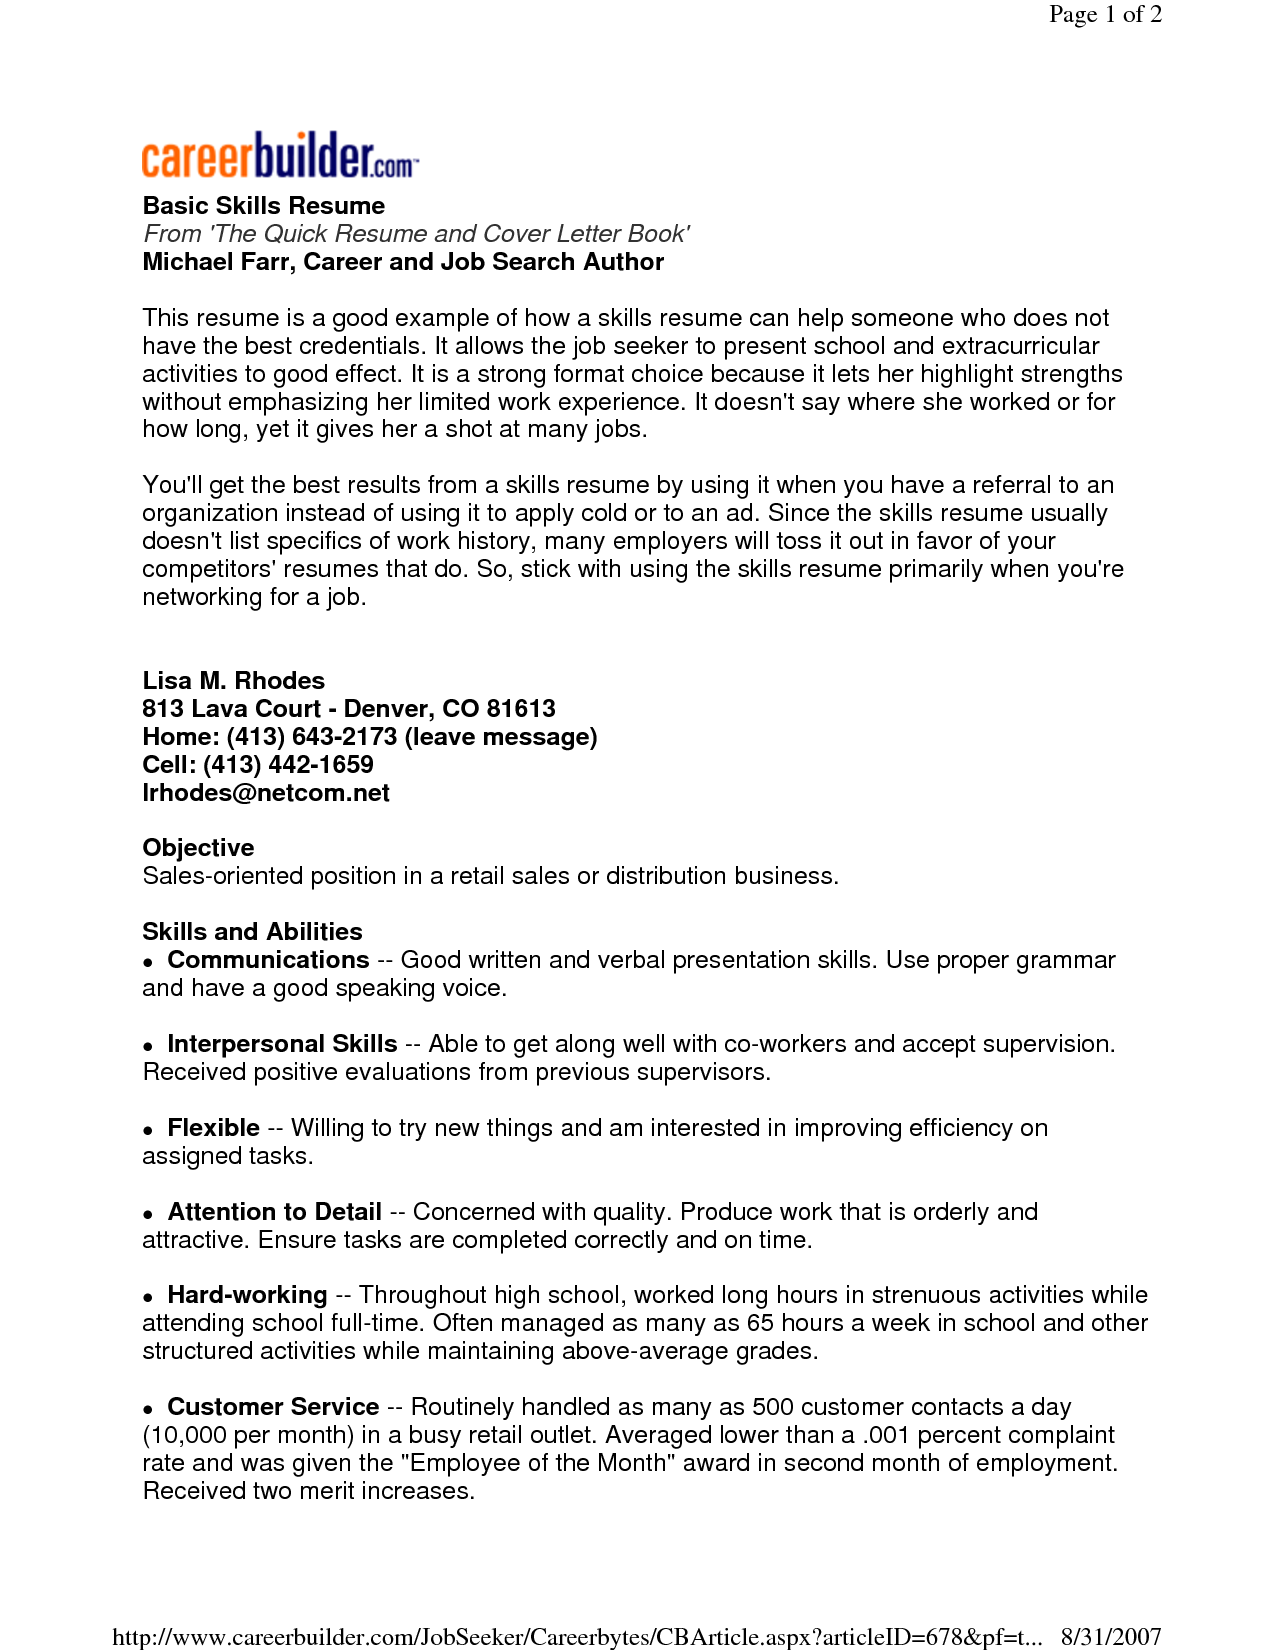 Resume Template For First Part Time Job Resume Writing Template Writing  Resume Sample With Resume Writing